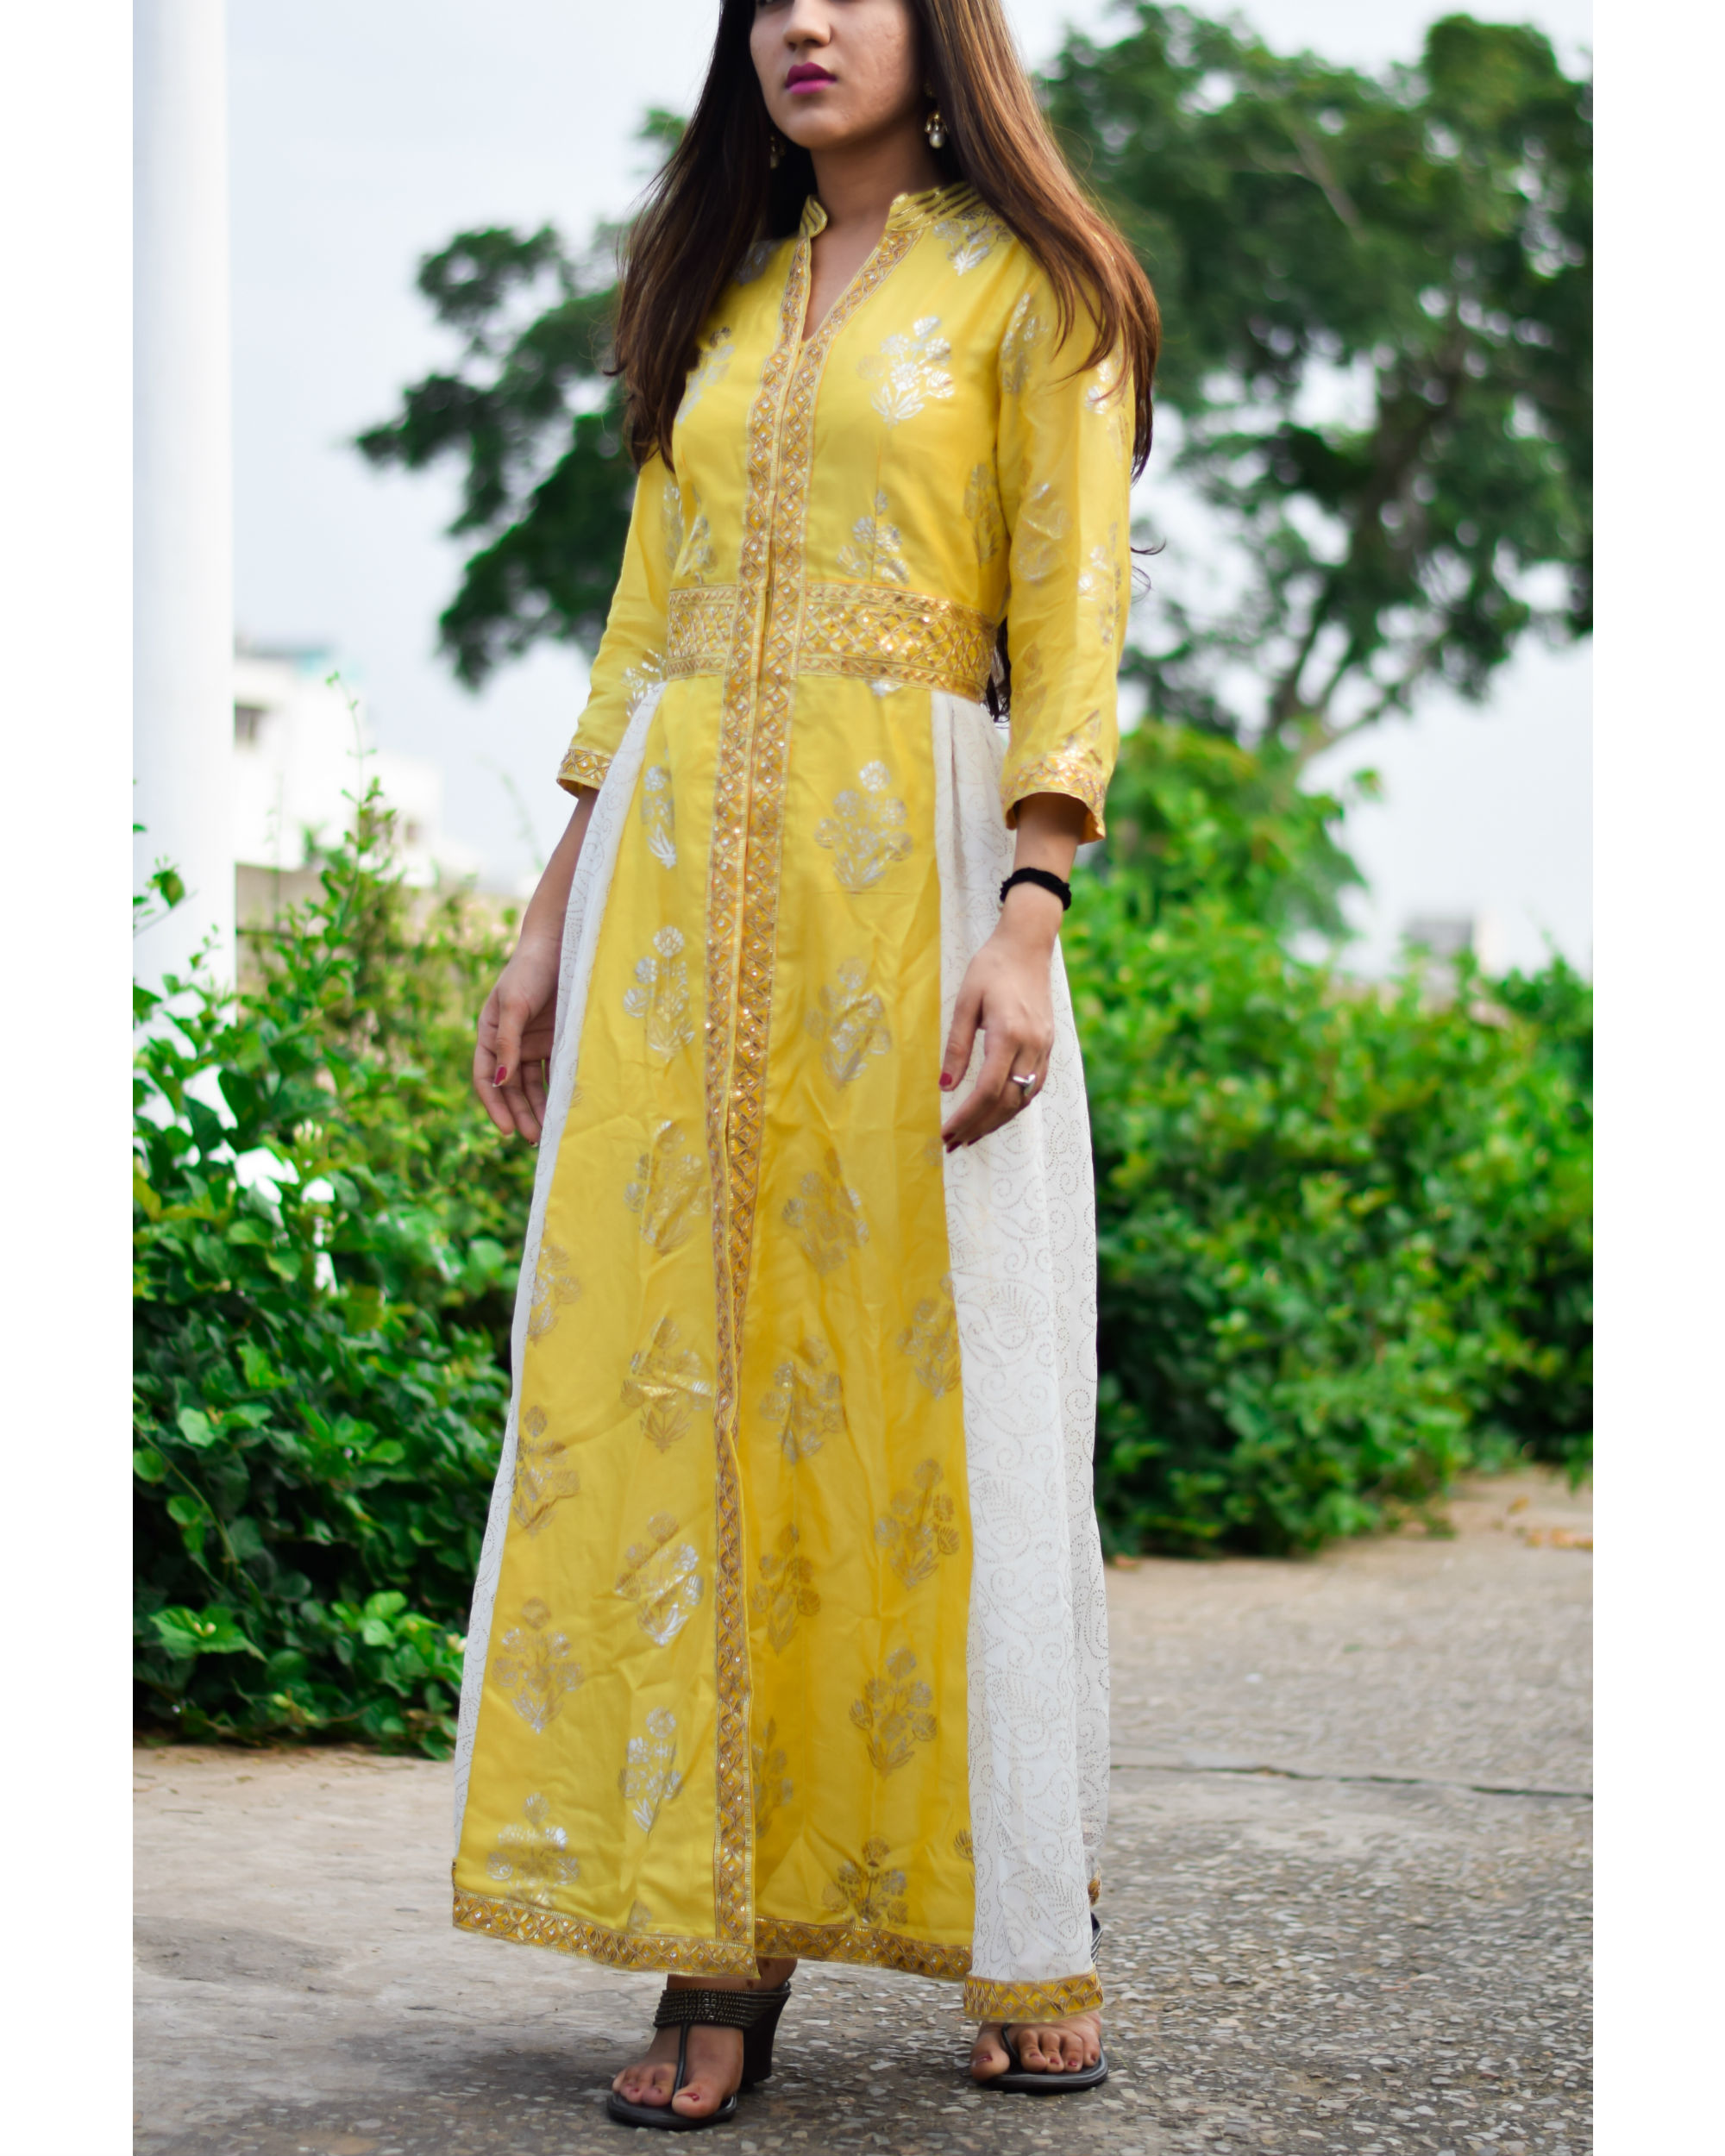 Yellow foil print dress with gota handwork